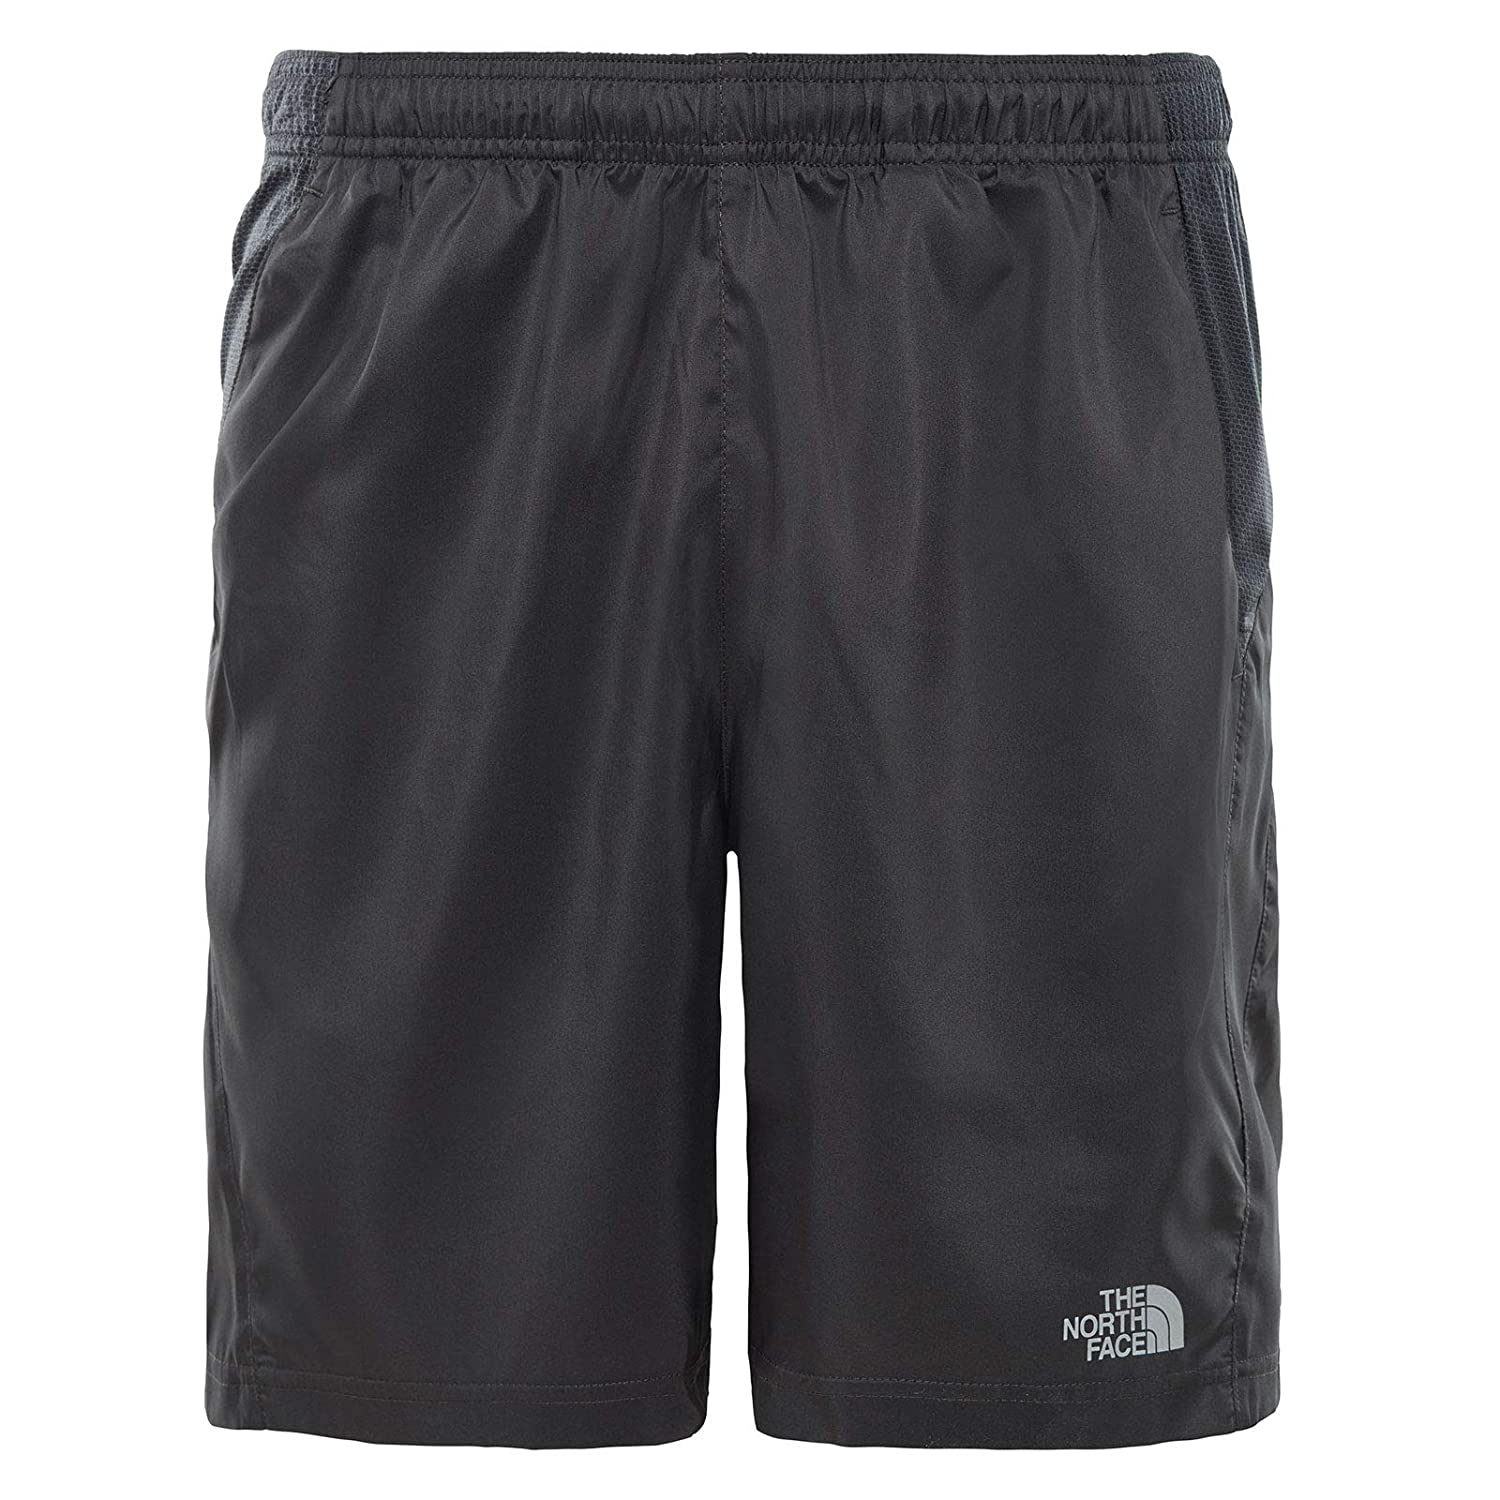 THE NORTH FACE 24/7 Short Homme NOS67|#The North Face